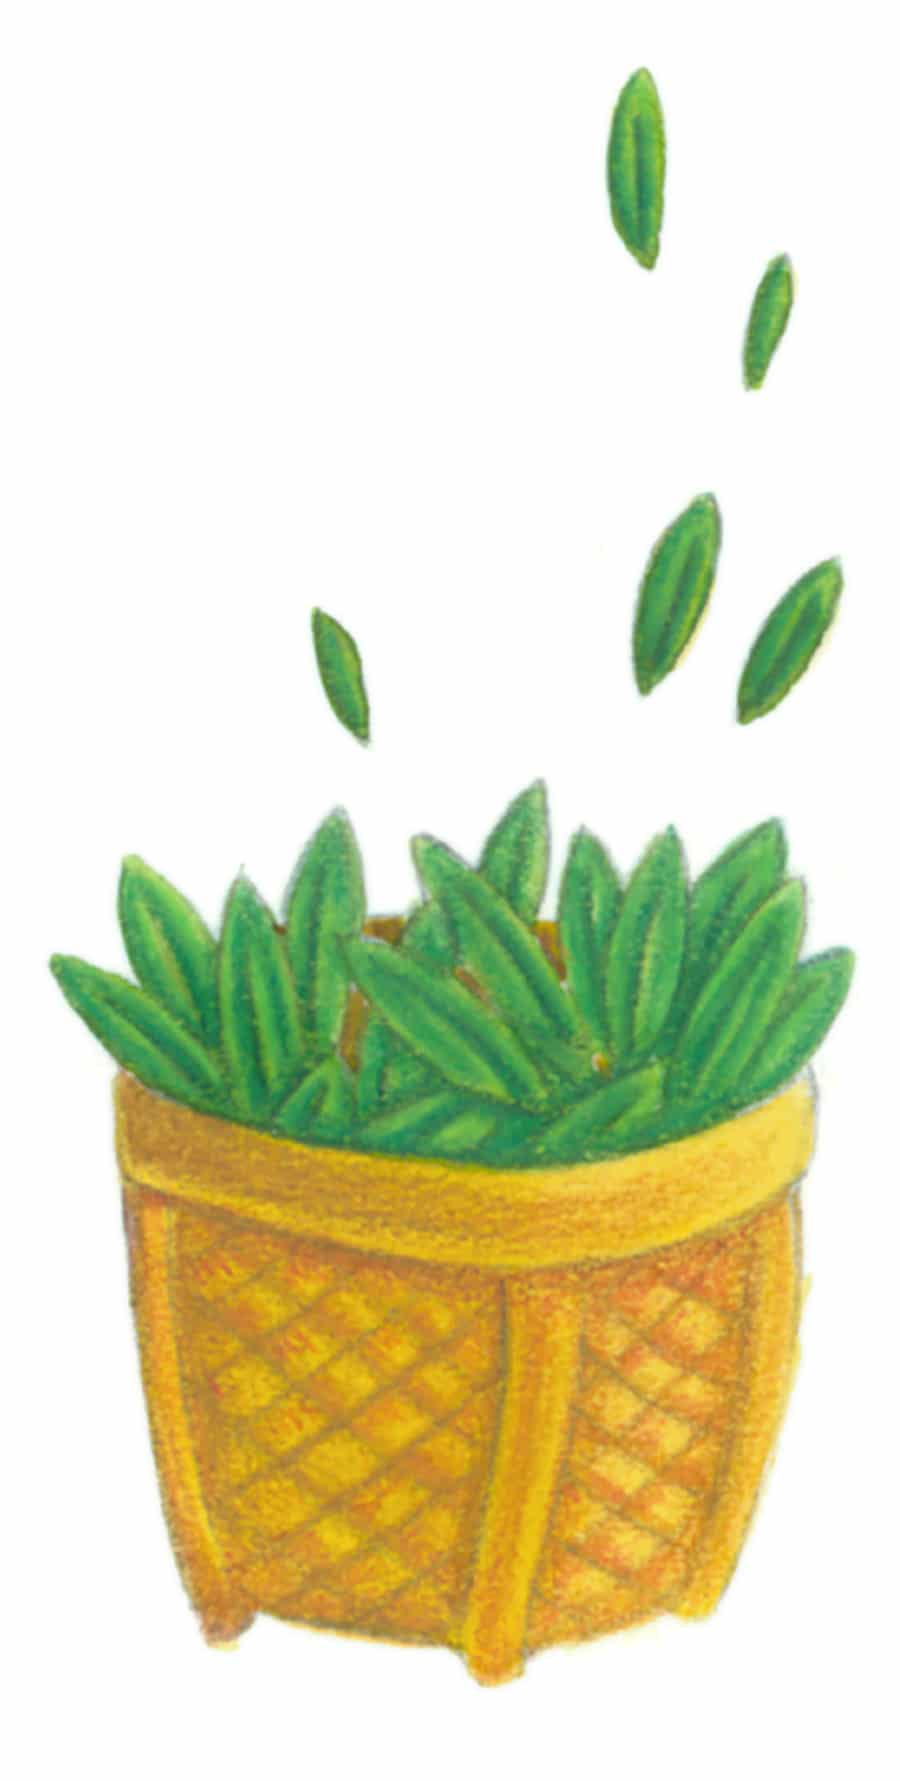 Illustration 10 'The Basket of Herbs' (Pixel dimensions available w370 x h741)